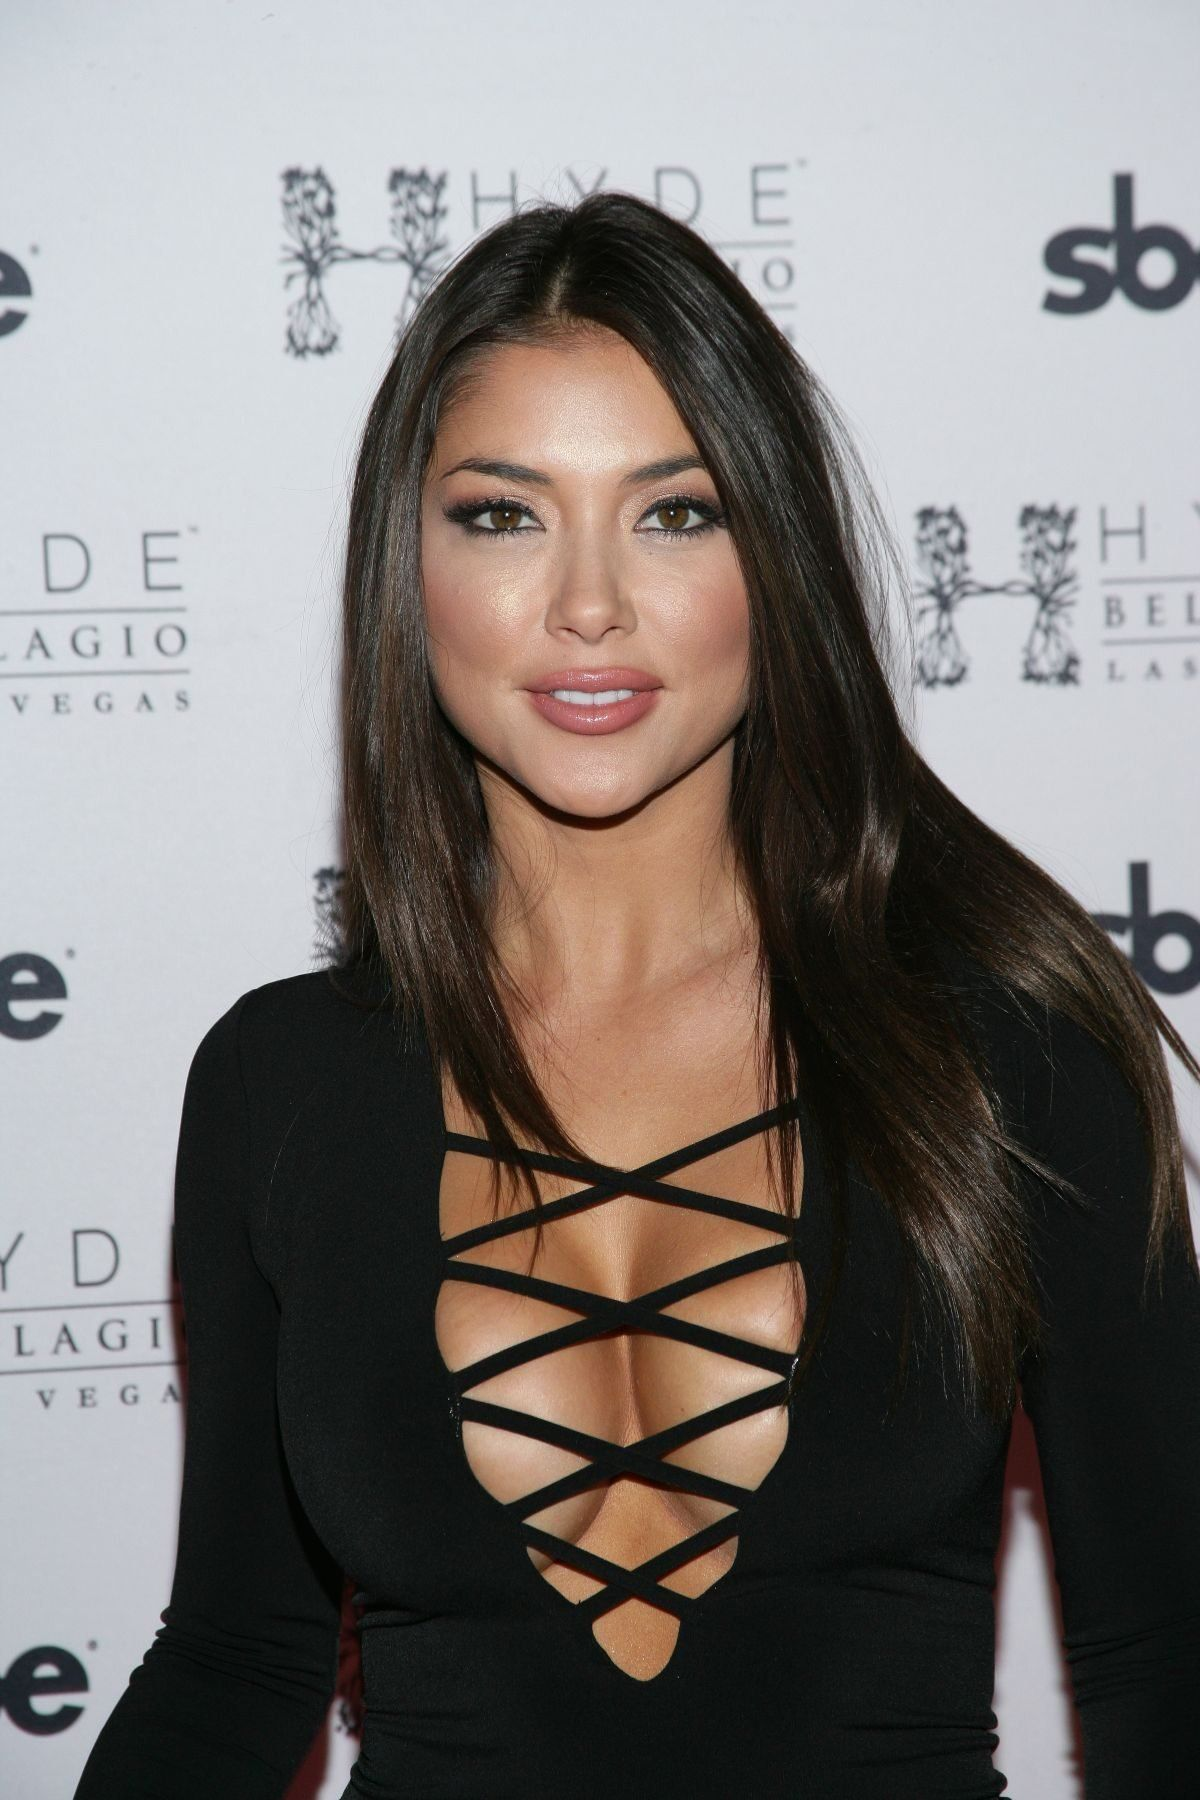 Arianny Celeste Actrix Porno jessica celeste - sexy most watched image free. comments: 3